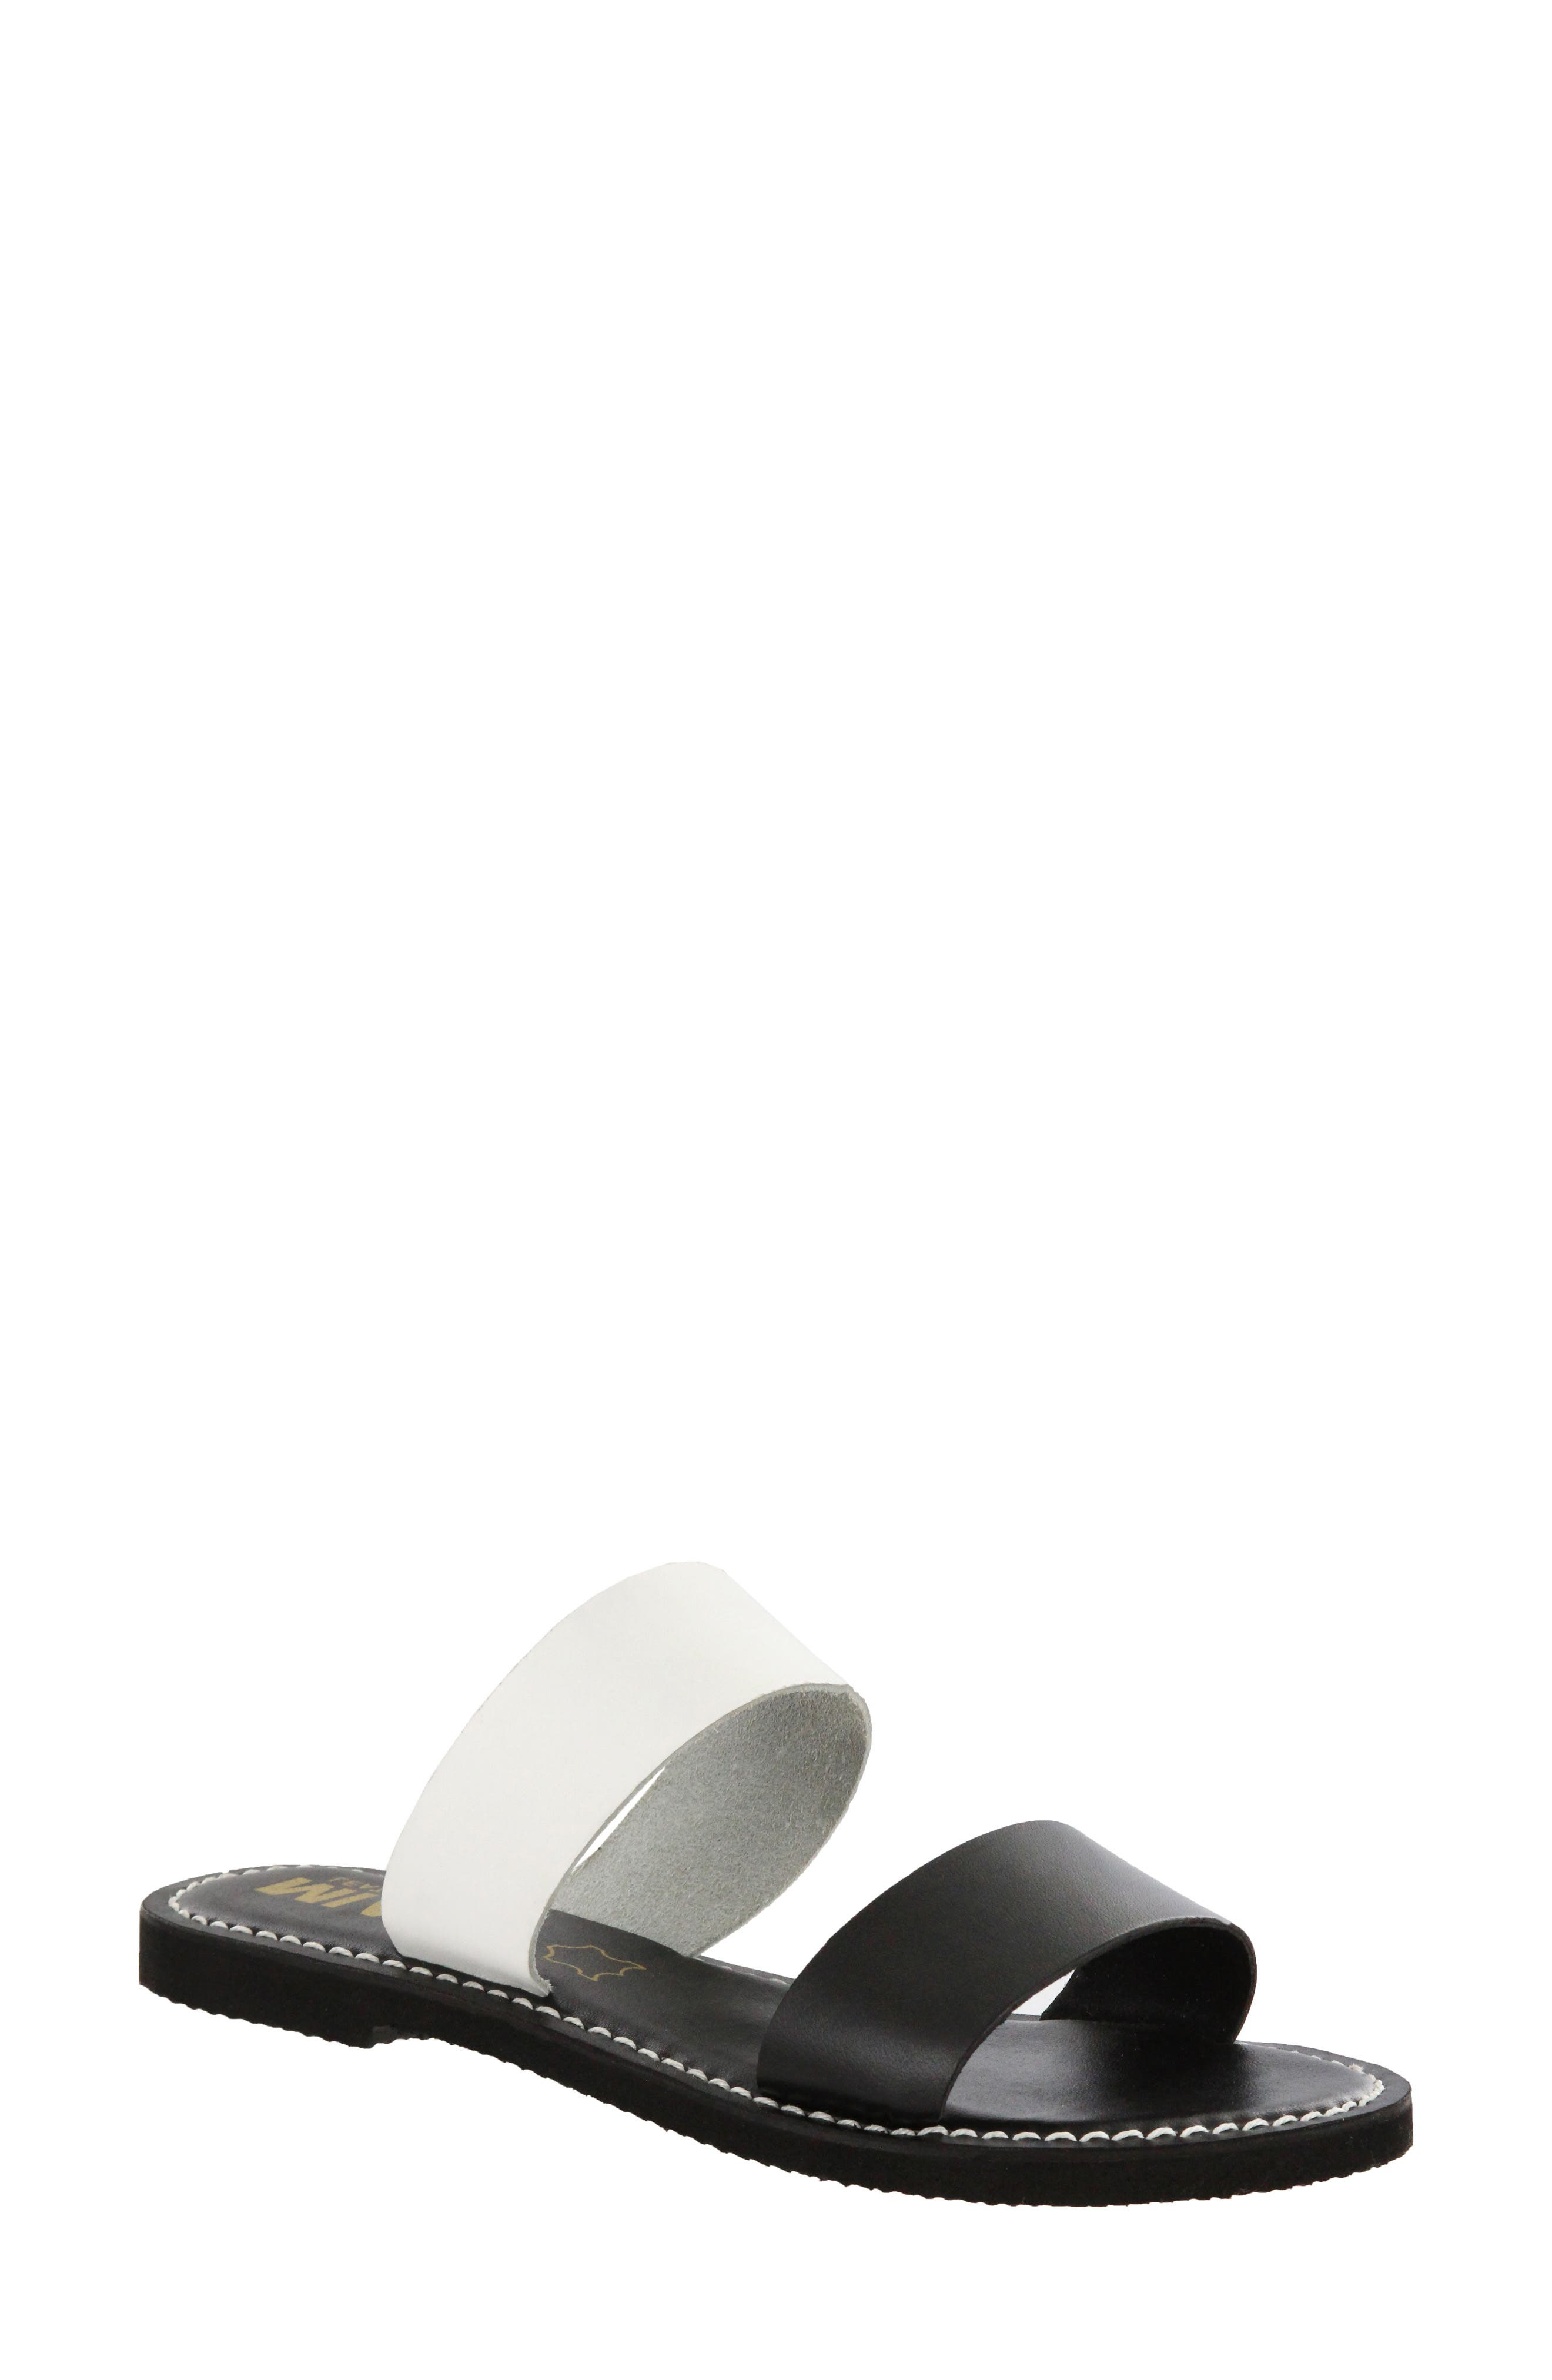 Nila Two-Band Slide Sandal,                             Main thumbnail 1, color,                             Black/ White Leather